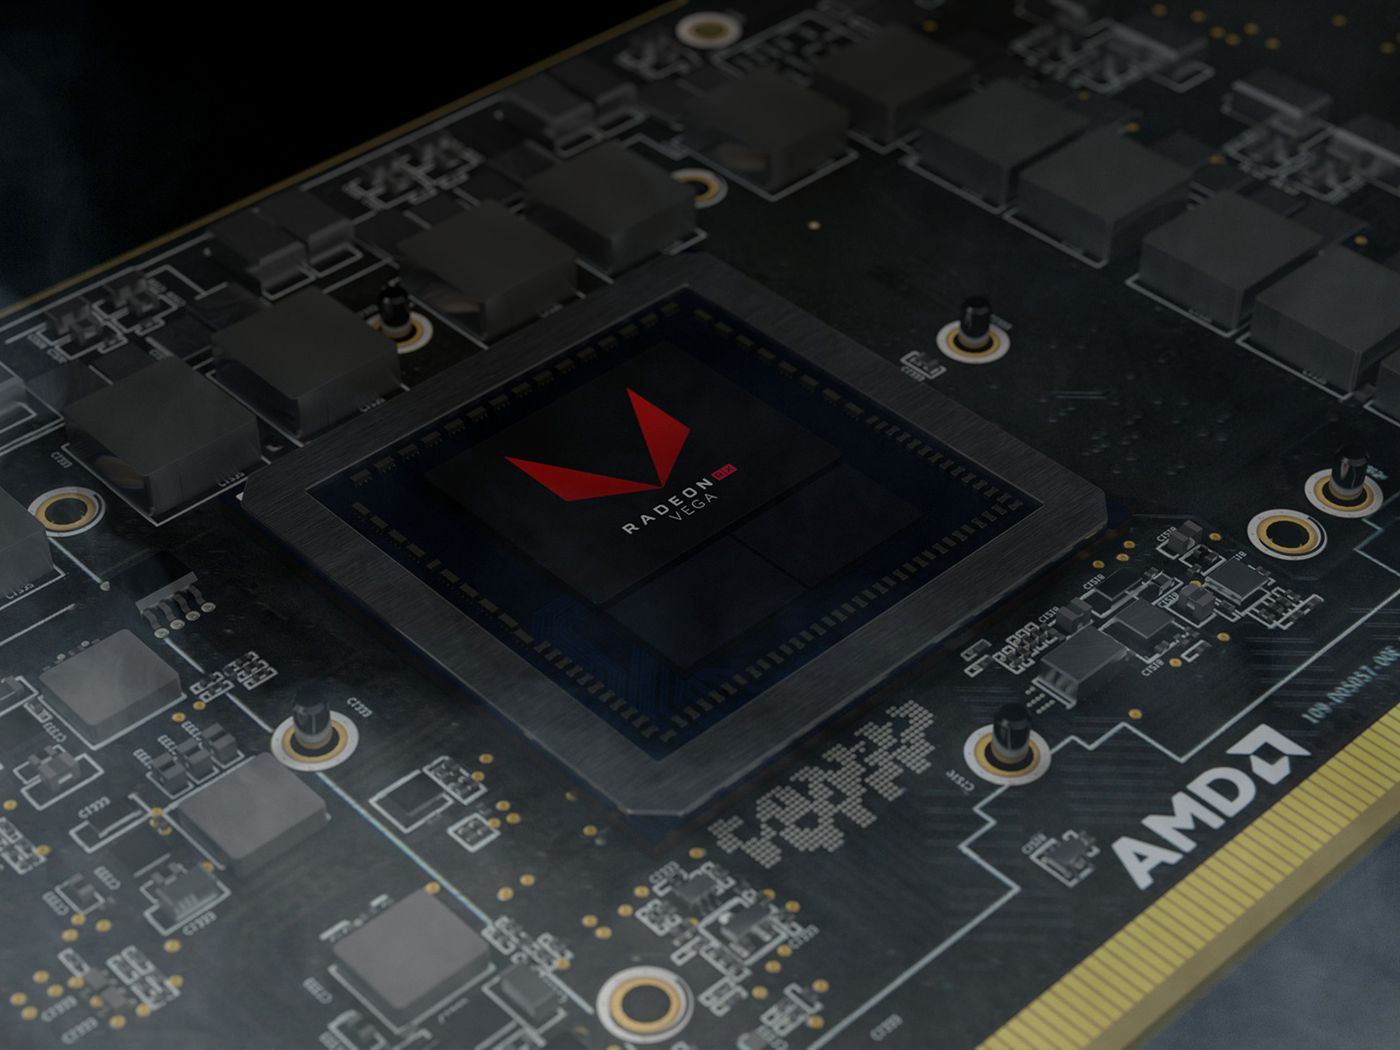 Graphics card shortage leads retailers to take unusual measures